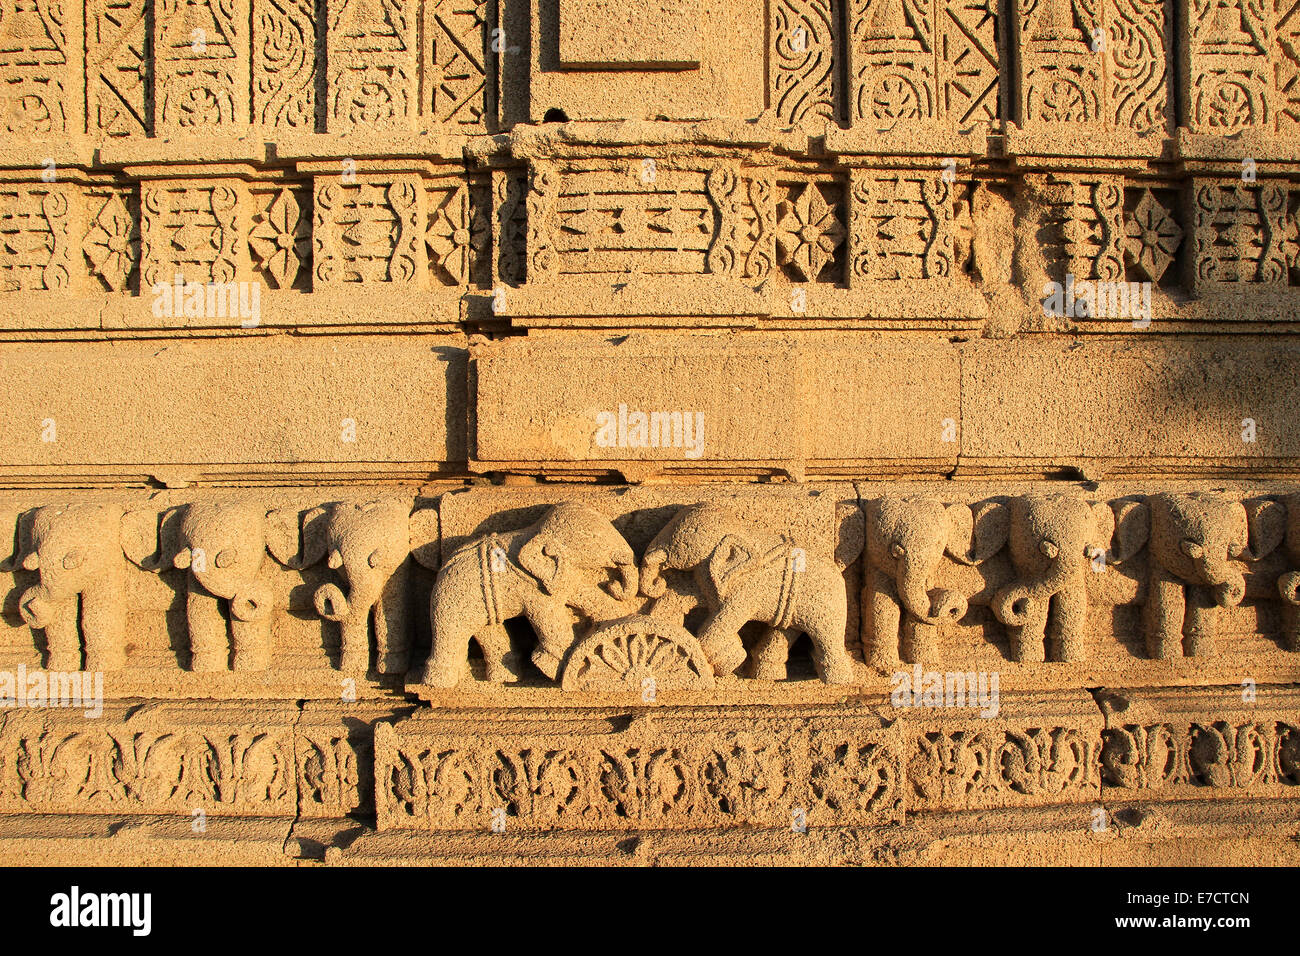 Etching of elephants in various postures on stone wall at Rukmini Temple, Dwaraka, Gujarath, India, Asia - Stock Image